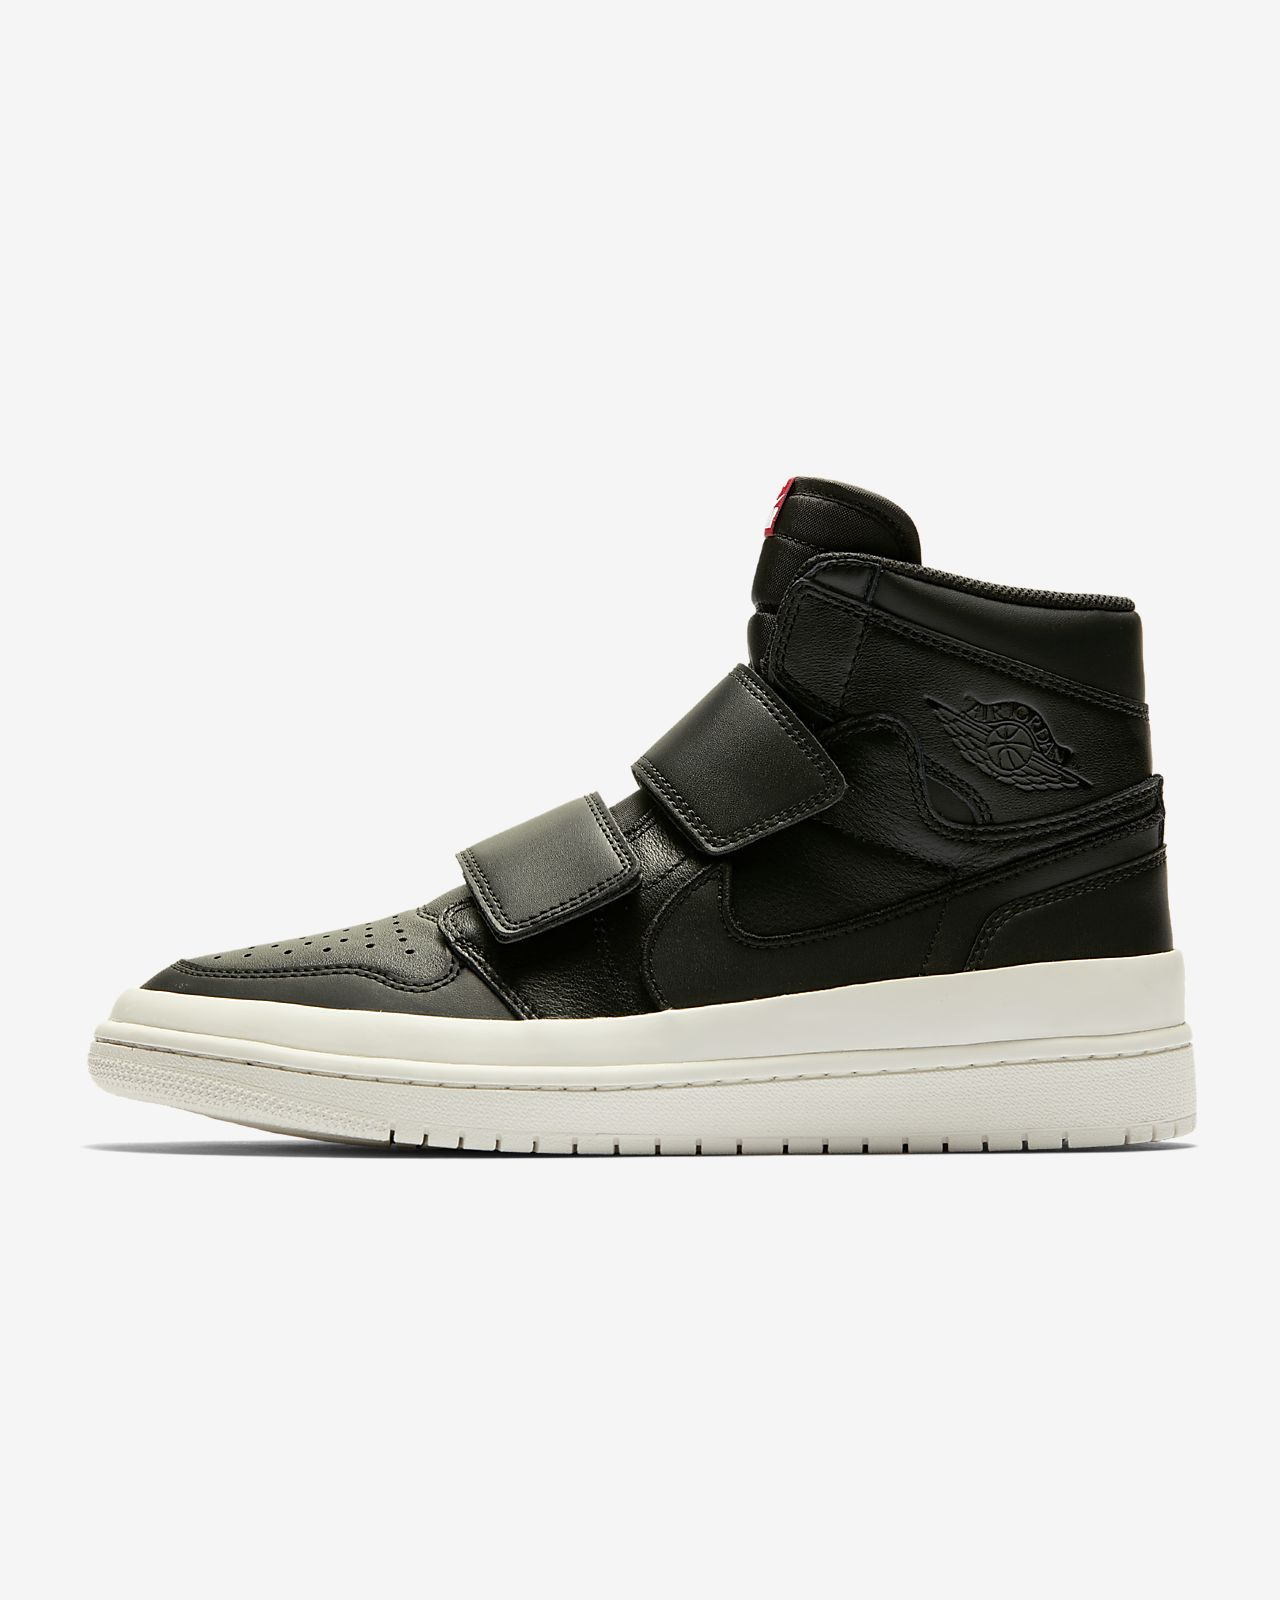 Air Jordan 1 Retro High Double-Strap Men's Shoe